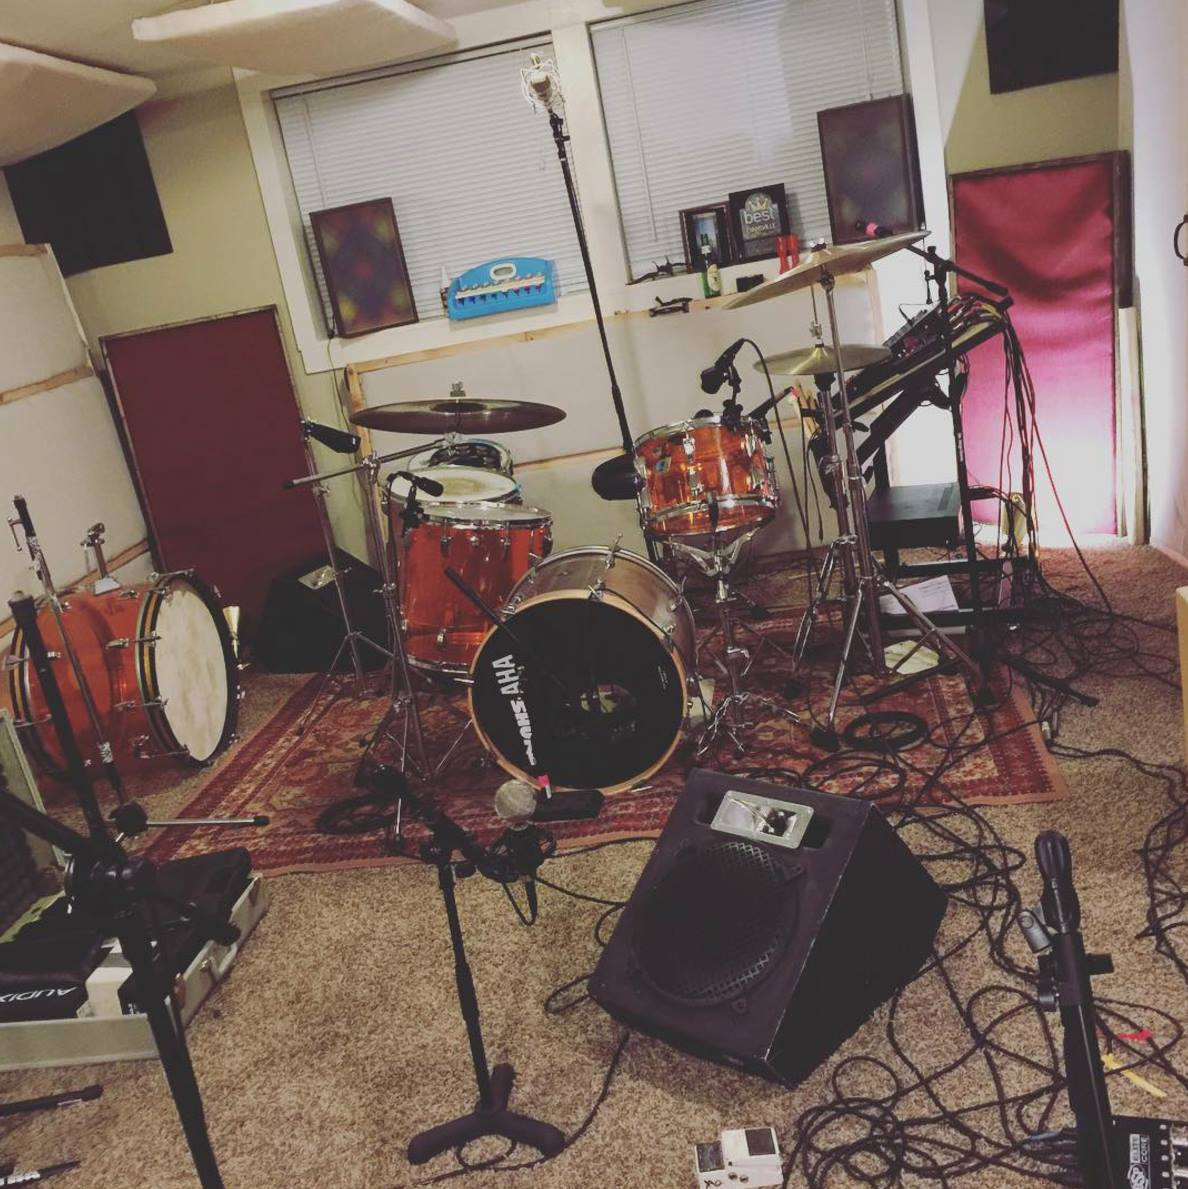 11.12.2015 This was how Zach's studio looked the first day of recording IBYAC.